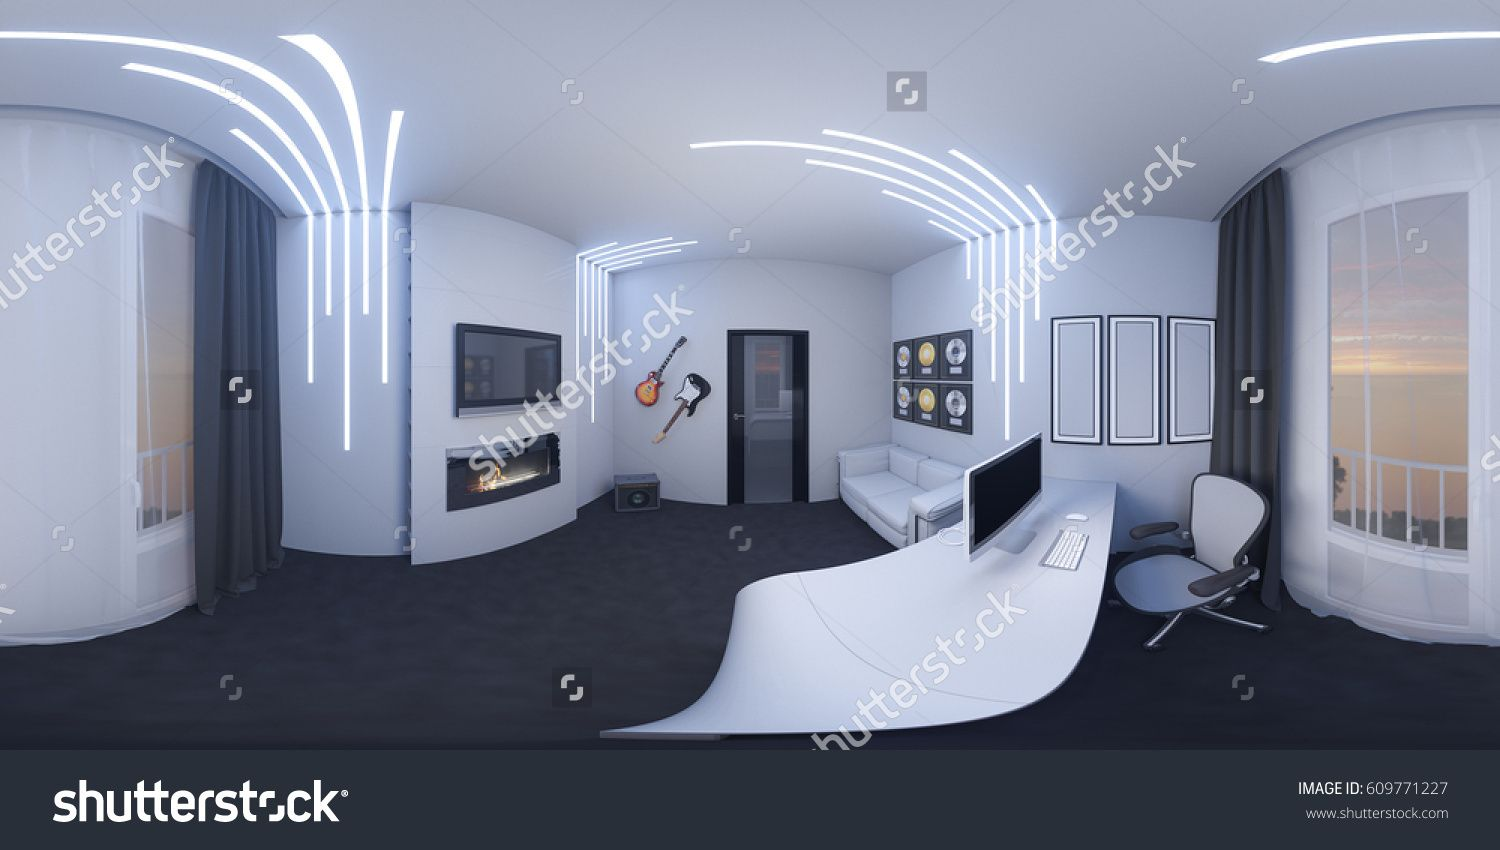 illustration of interior design of a home office in a space style. Render  executed, 360 degree spherical seamless panorama for virtual reality.